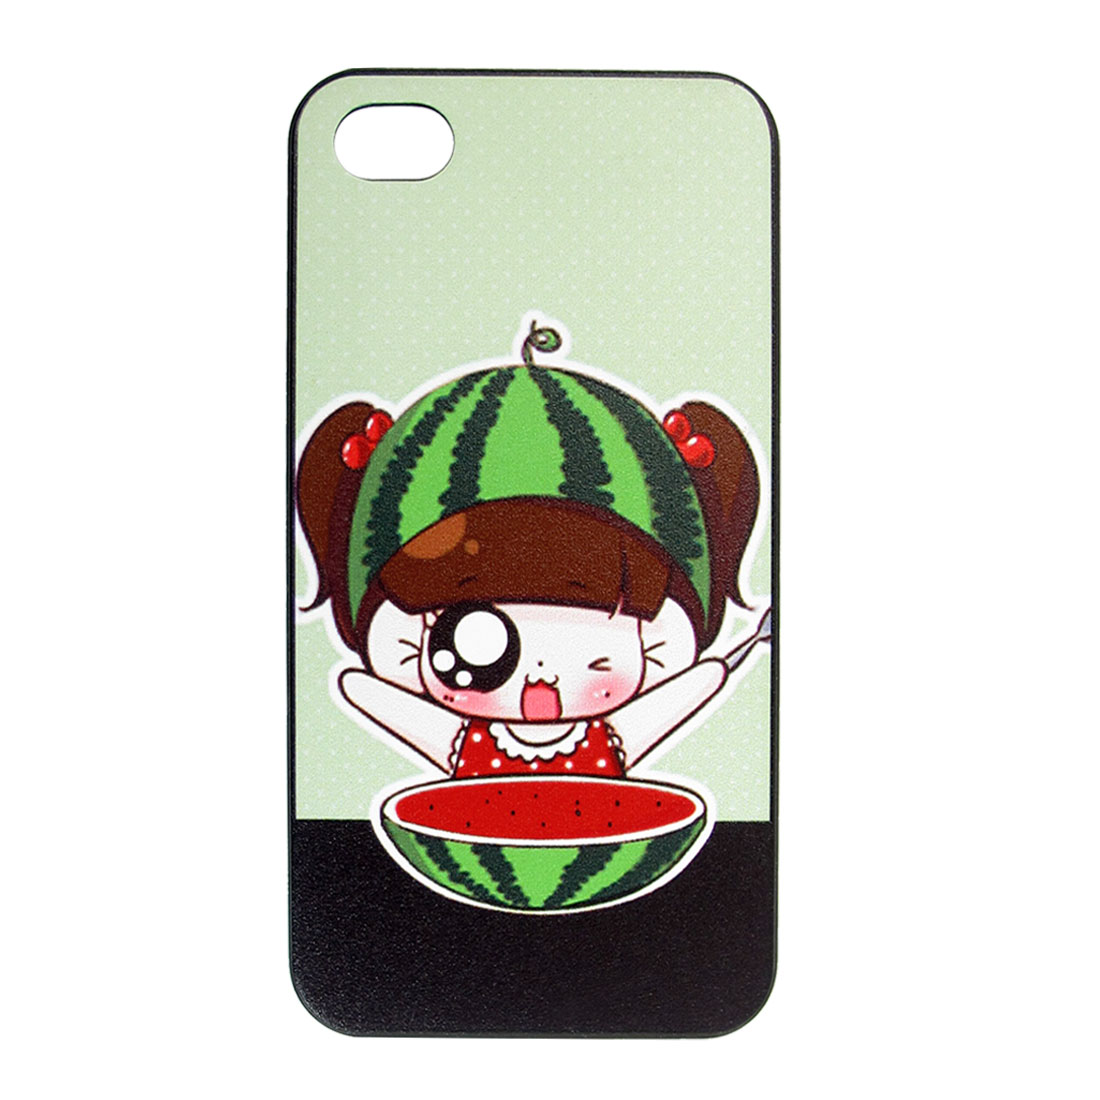 Watermelon Girl Design Hard Back Case Cover Bumper for Apple iPhone 4 4G 4S 4GS